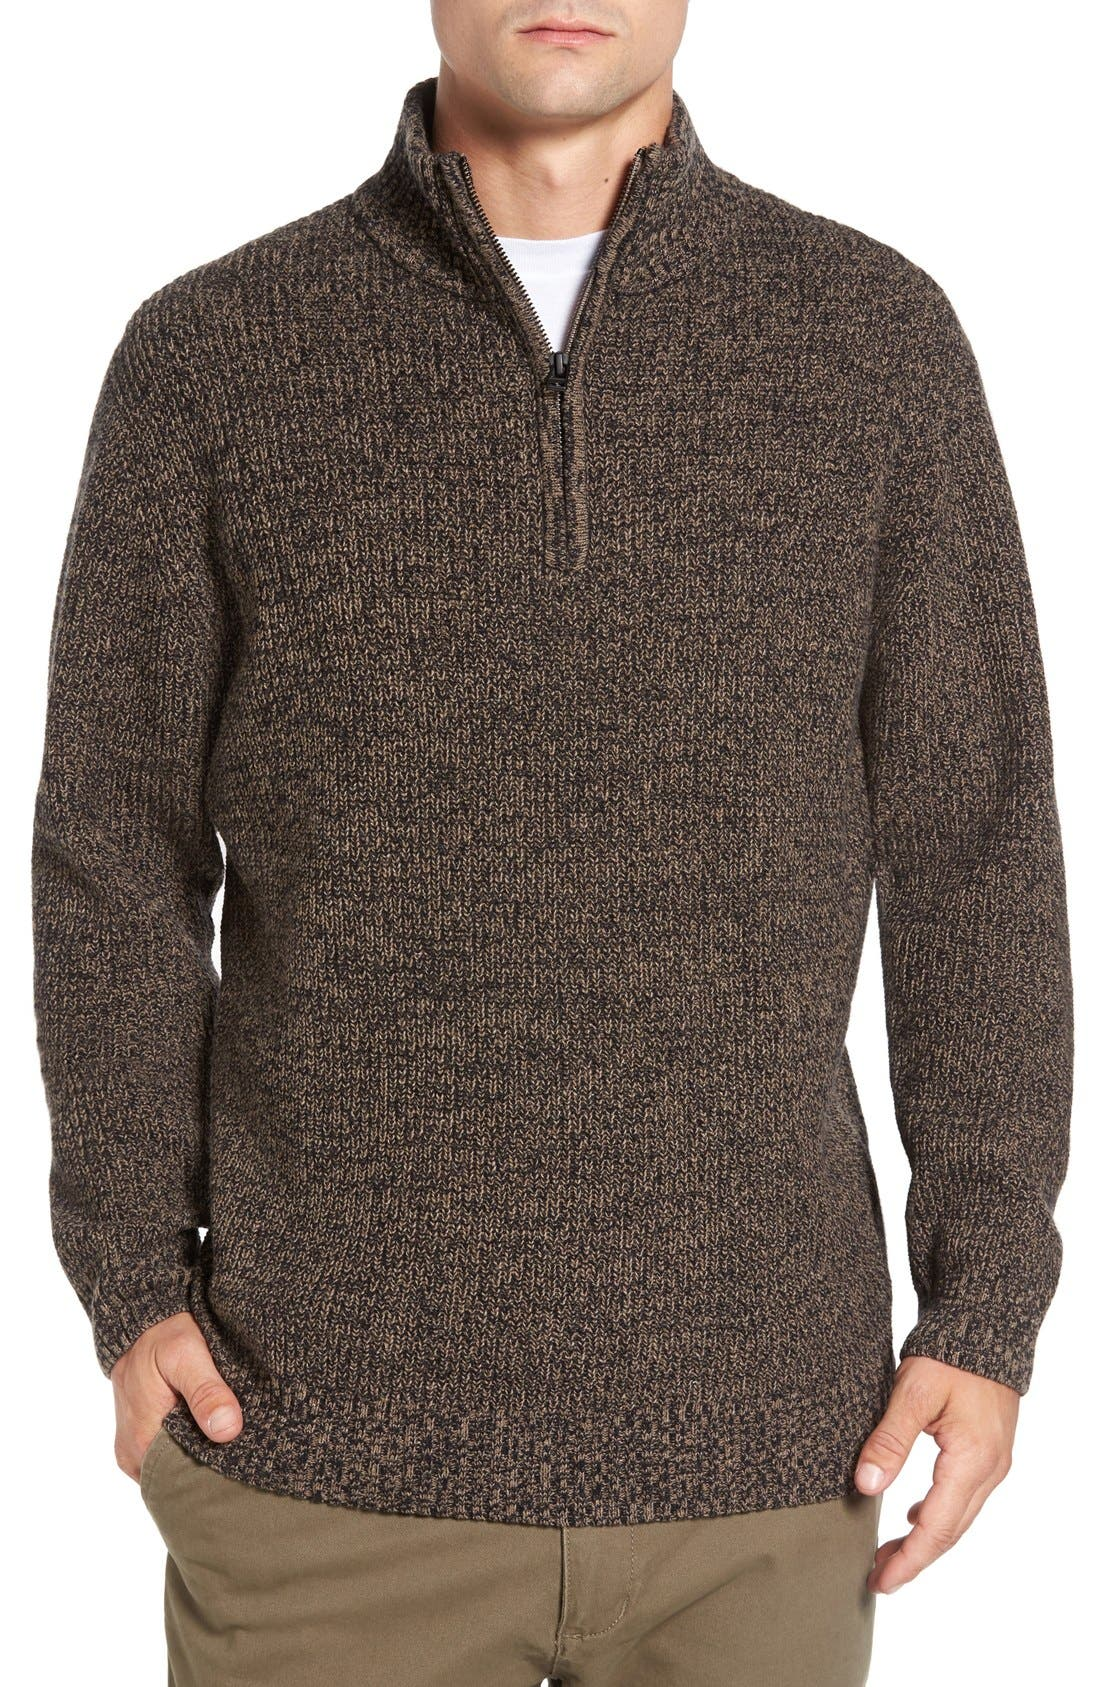 Rodd & Gunn 'Woodglen' Herringbone Knit Lambswool Quarter Zip Sweater